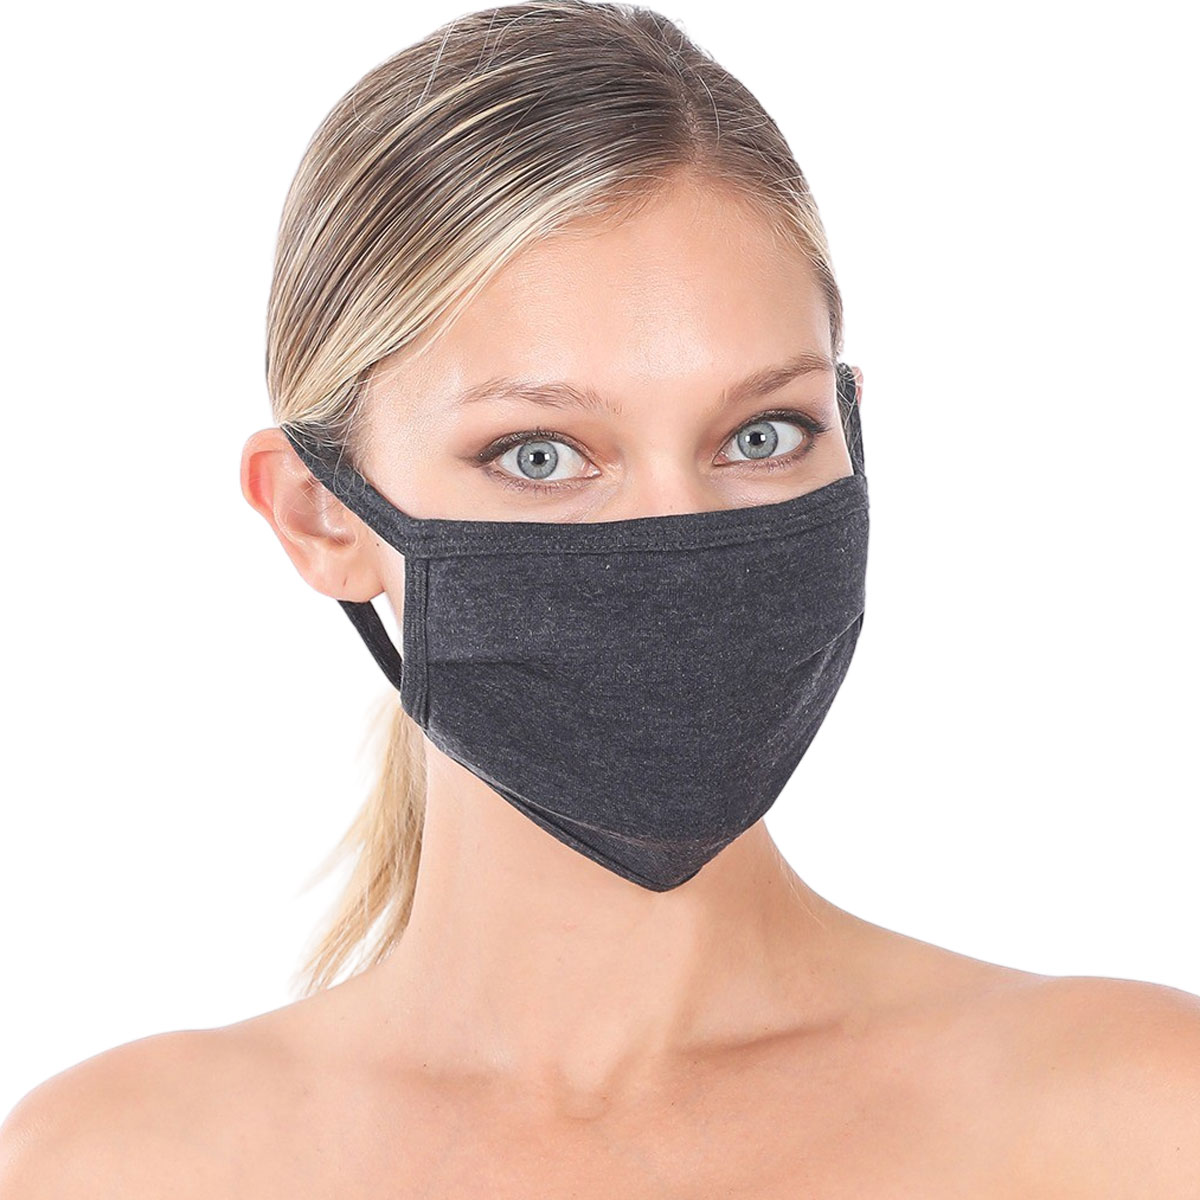 Protective Masks - Cotton Blend Two Ply CMK/CPMK - CHARCOAL Protective Masks- Cotton Blend Two Ply CMK:500